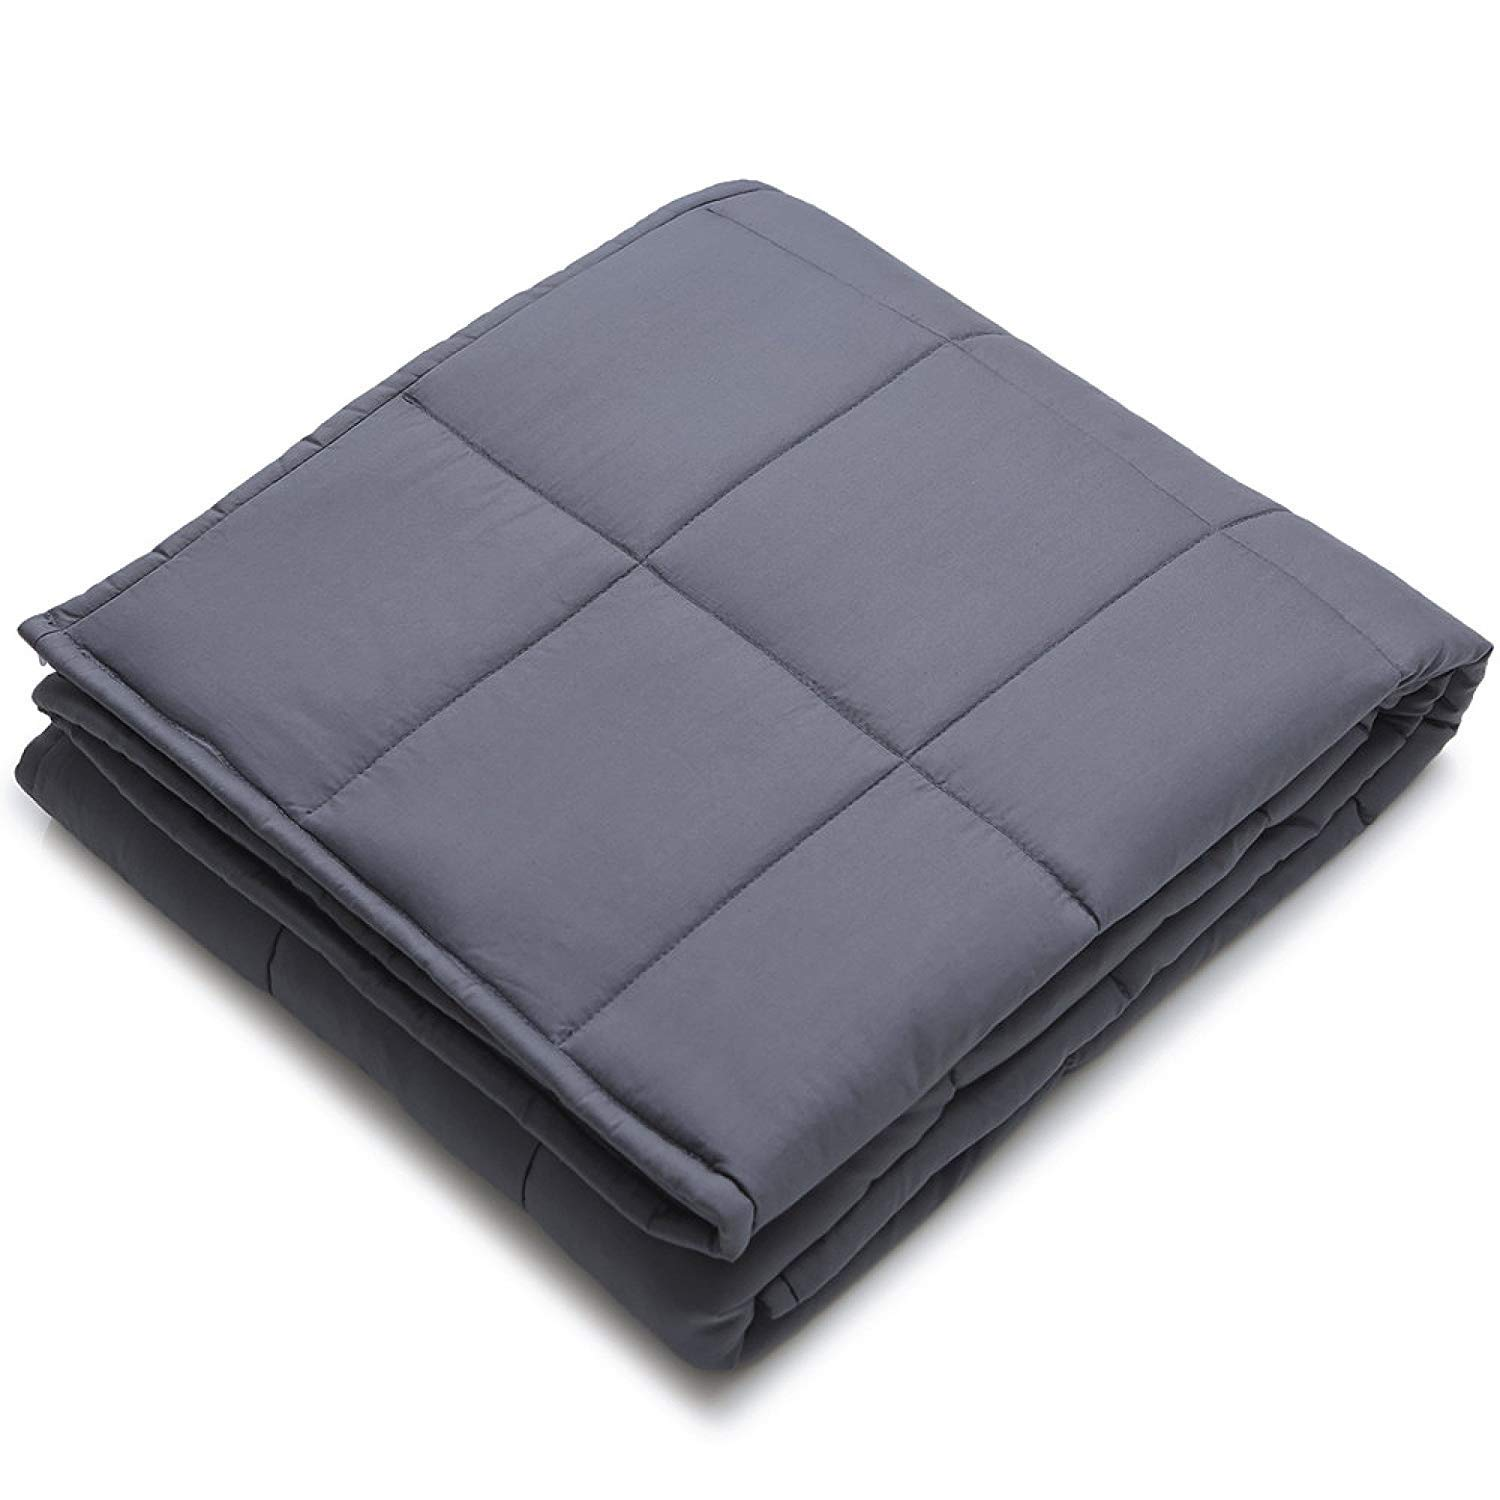 Weighted Blanket Looking for Distributors Worldwide-Home